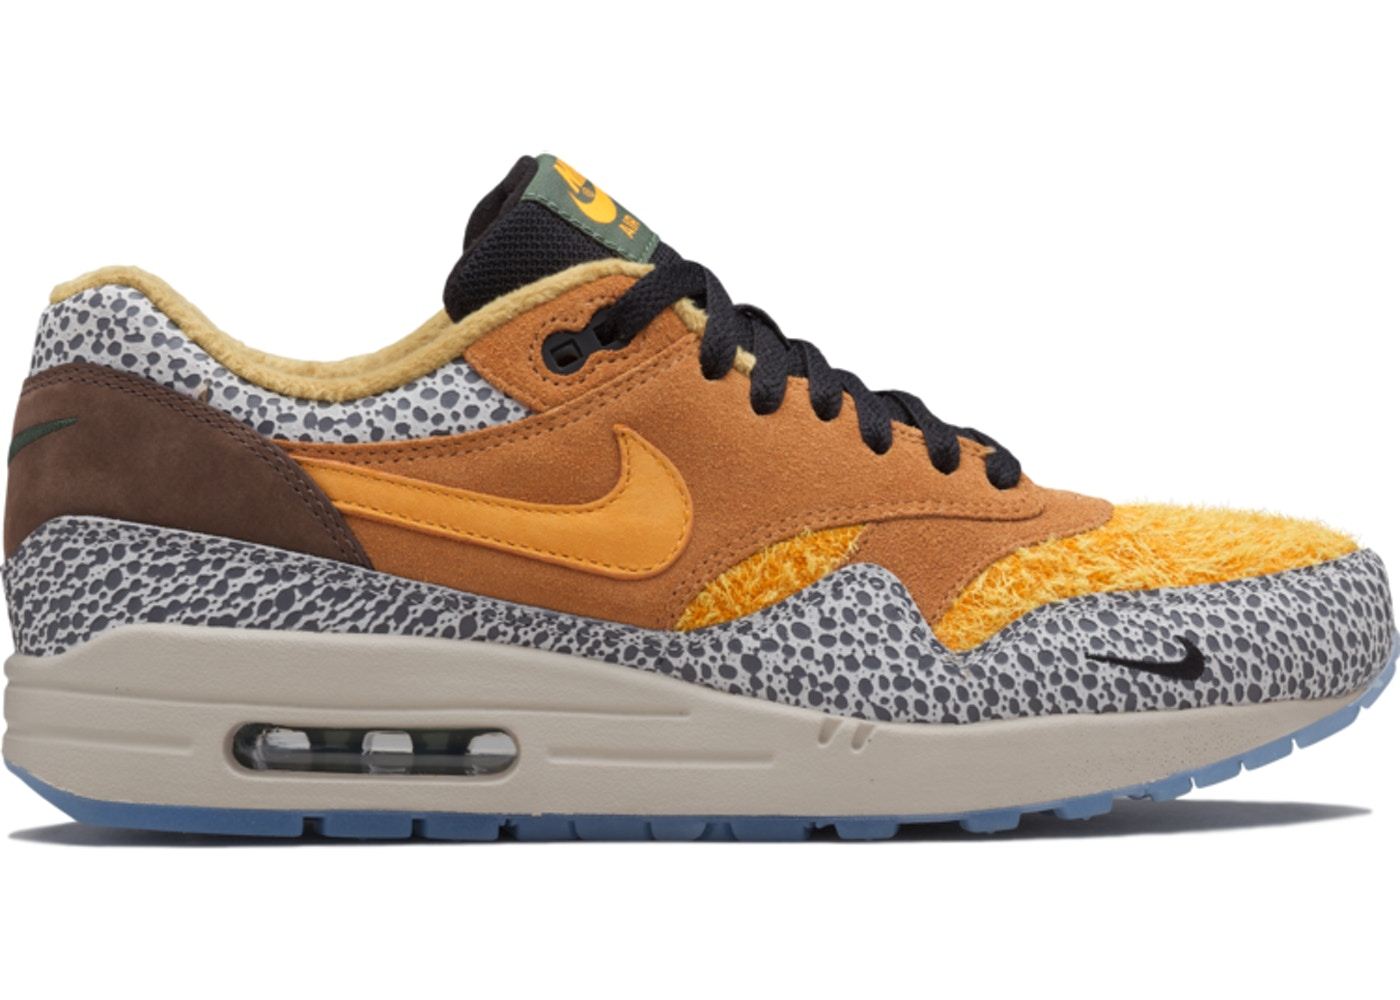 low priced cd45c 0c31a Air Max 1 Atmos Safari (2016) - 665873-200